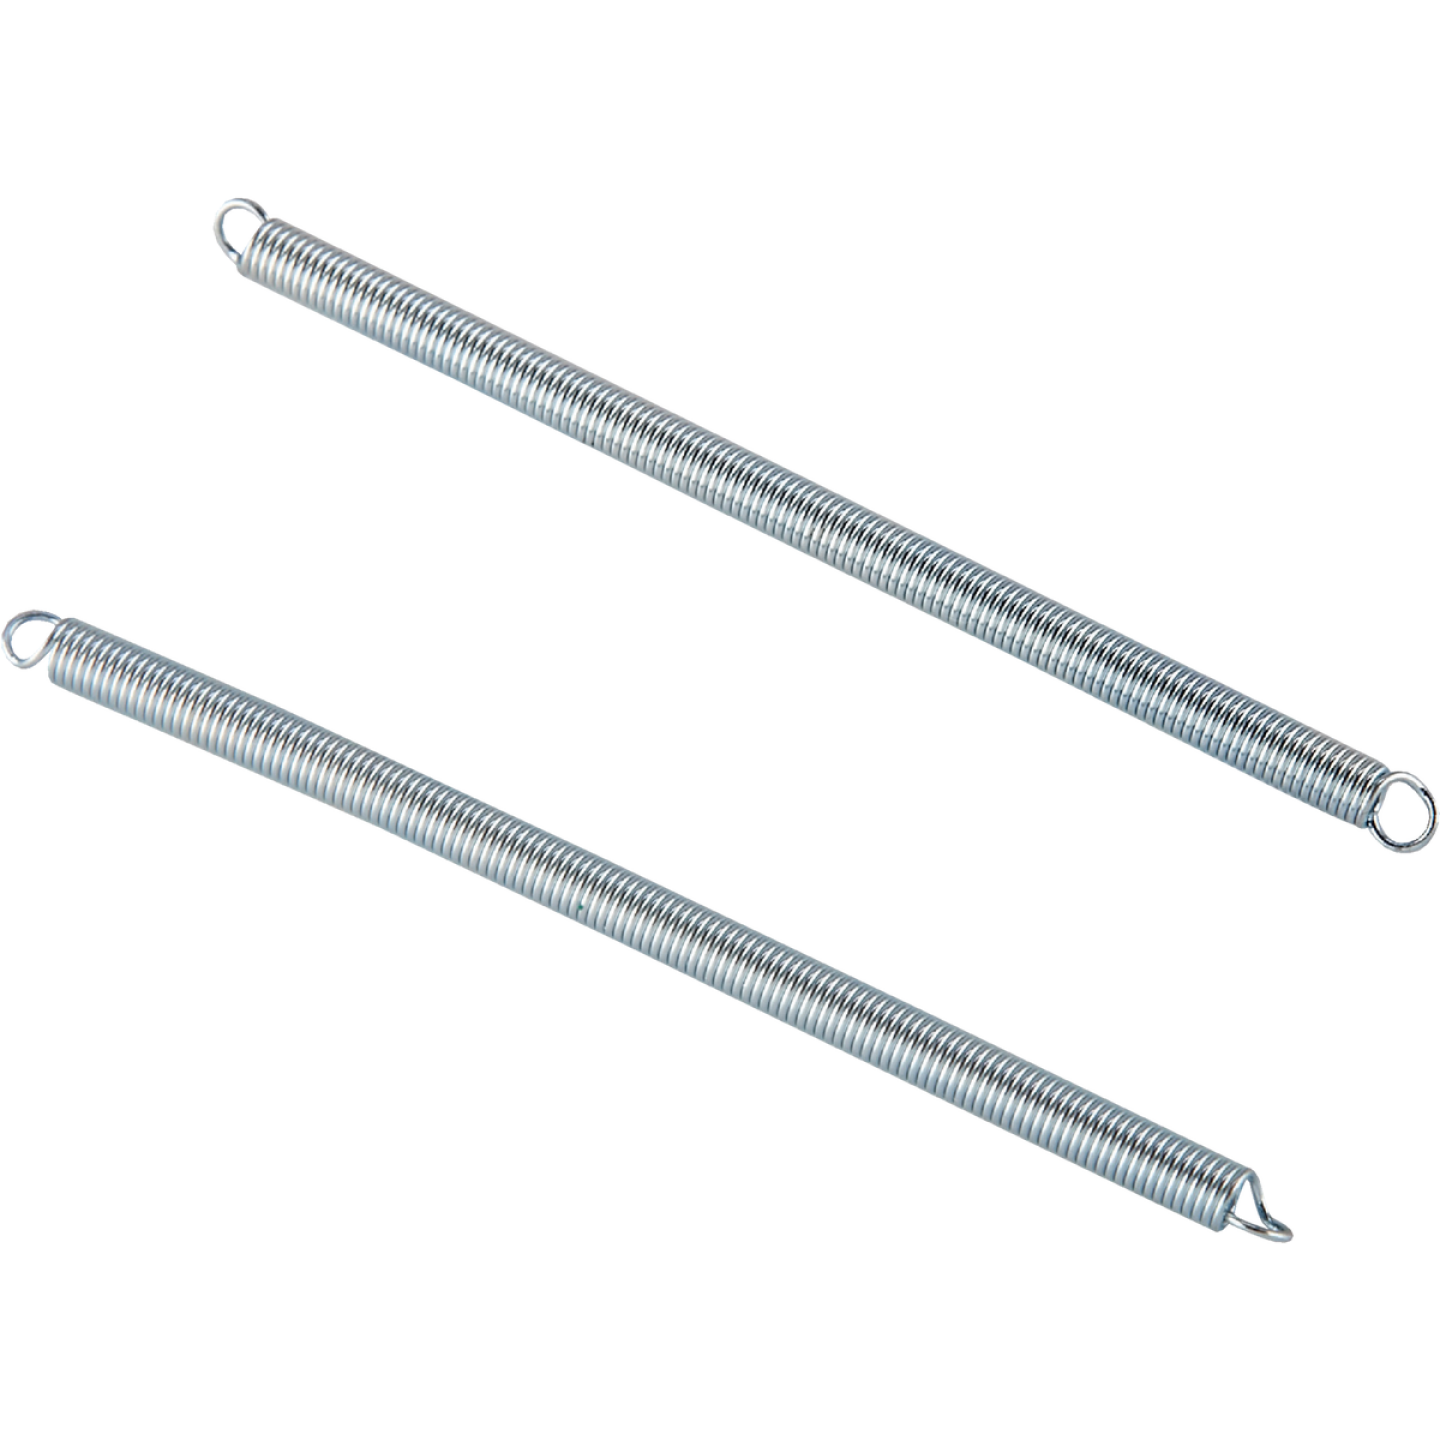 Century Spring 6-1/2 In. x 5/8 In. Extension Spring (2 Count) Image 1